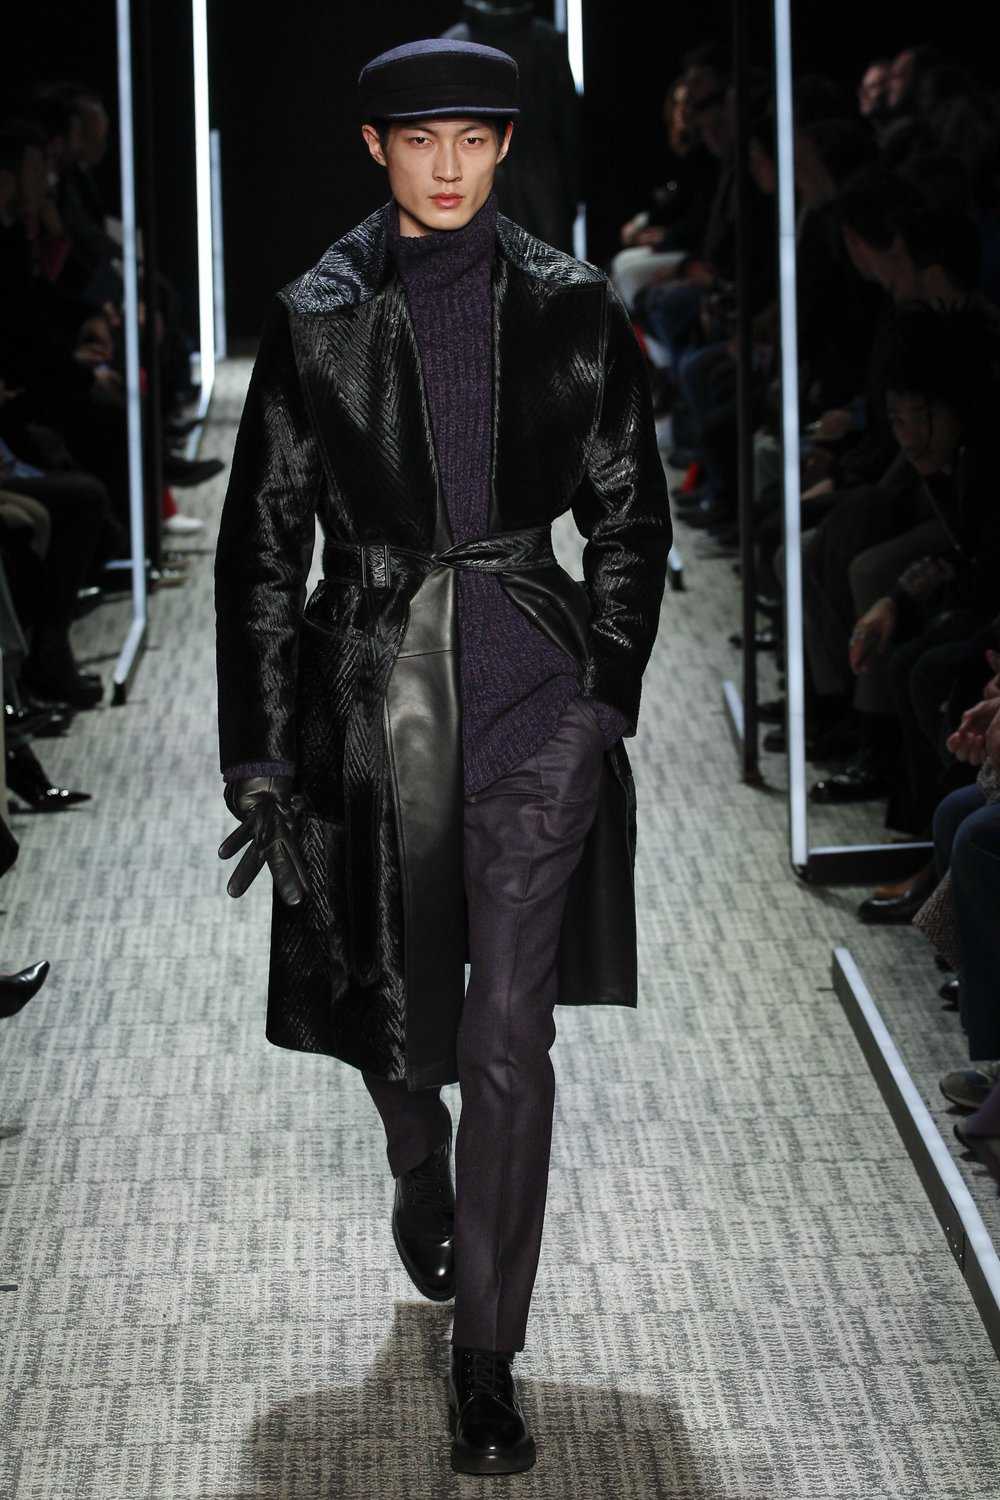 Cerruti 1881 Fall/Winter 2017-2018